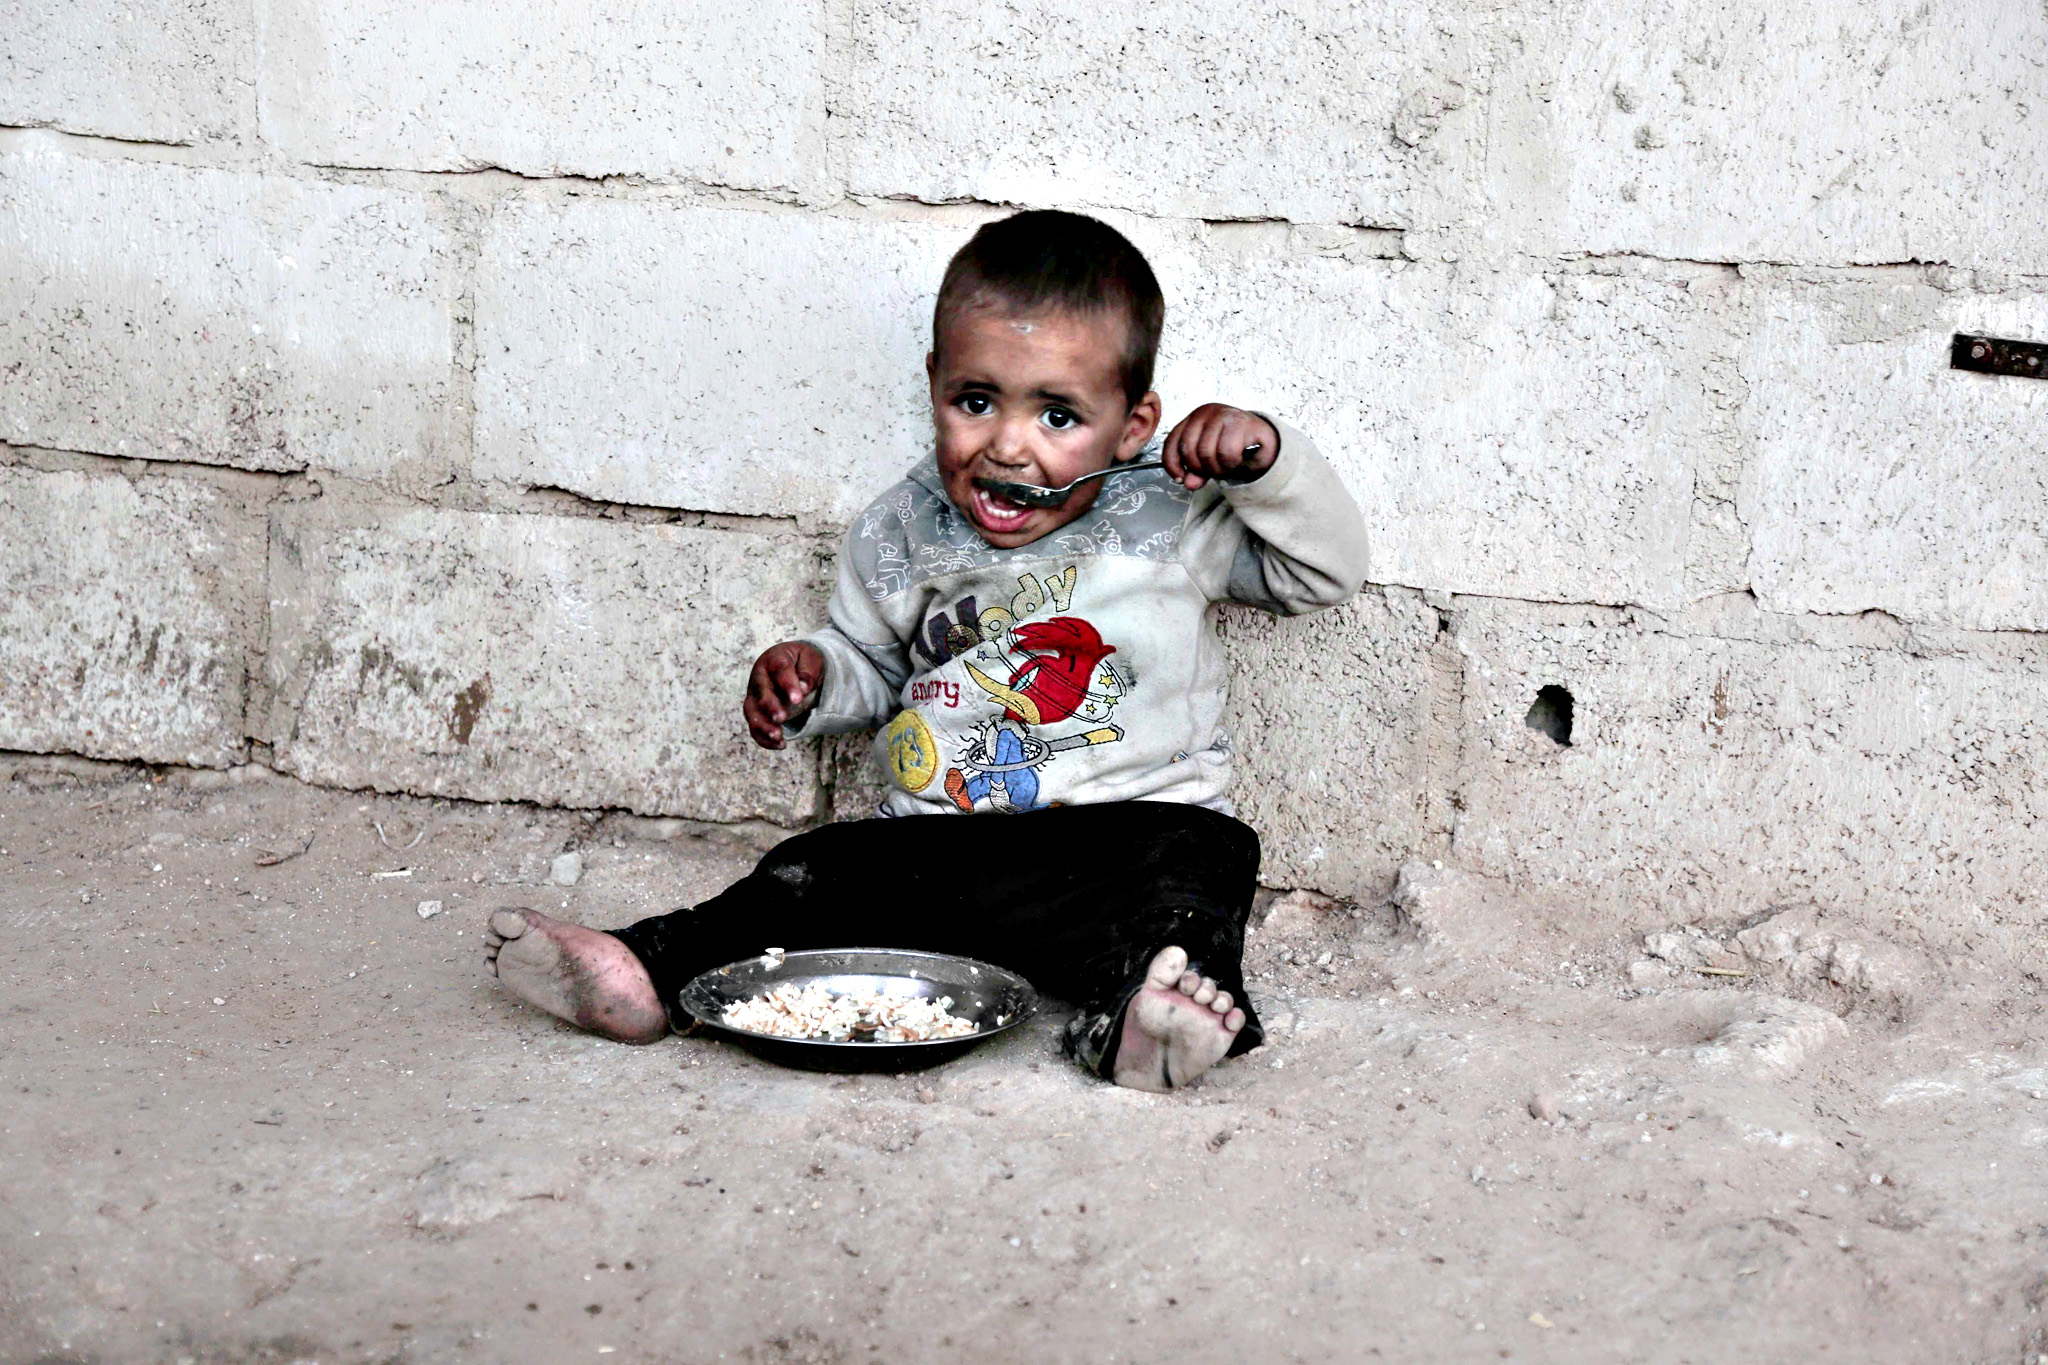 A child from the Abu Sleiman family has a lunch at his house in the Syrian town of Beit Nayem, in the rebel-held Eastern Ghouta region on the outskirts of the capital Damascus, January 14, 2016 (Photo: AFP/Amer Almohibany)